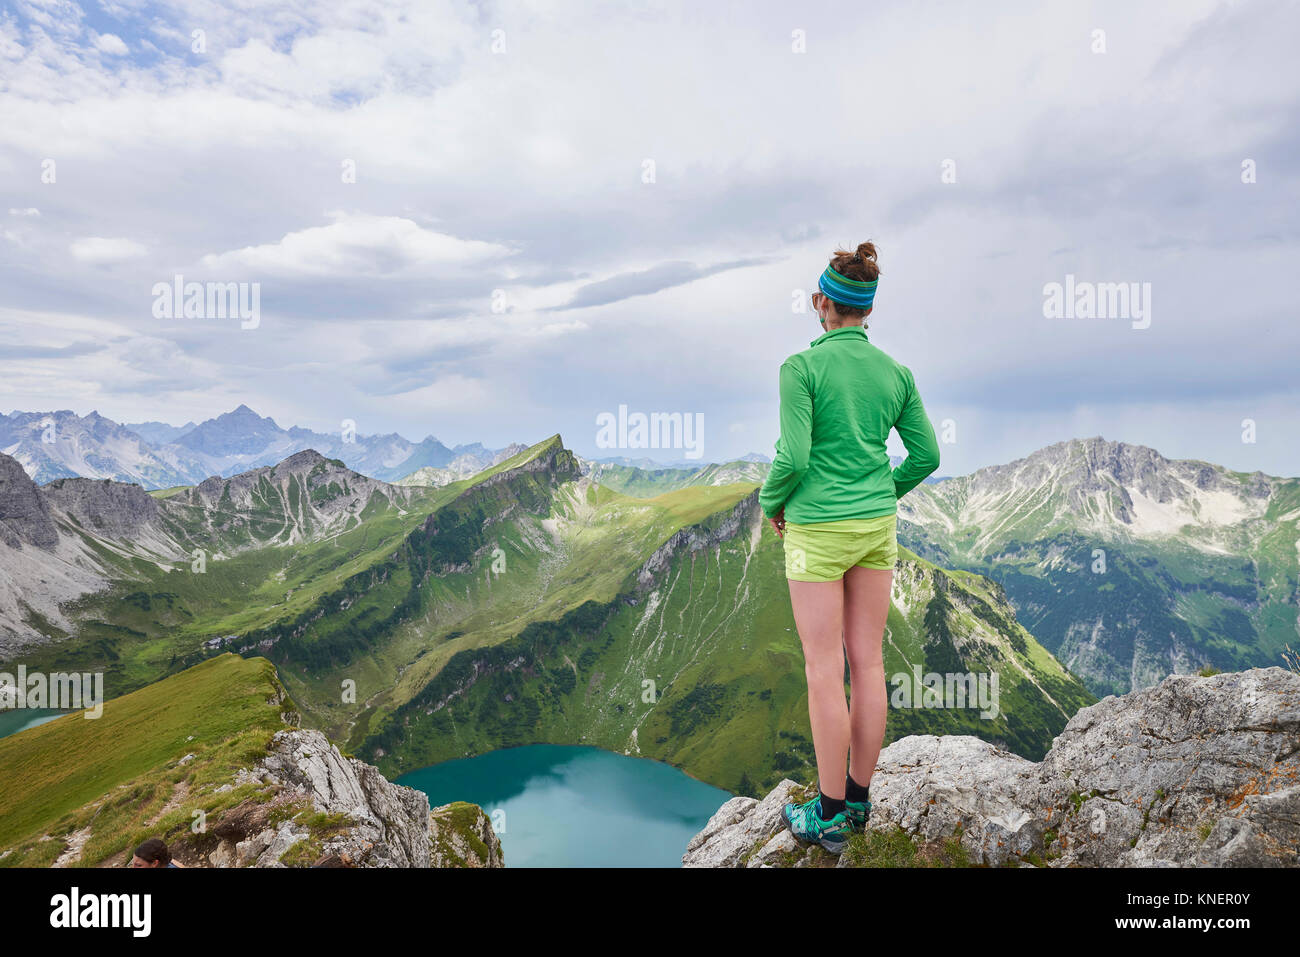 Rear view of female hiker on rocky edge looking out over Tannheim mountains, Tyrol, Austria - Stock Image